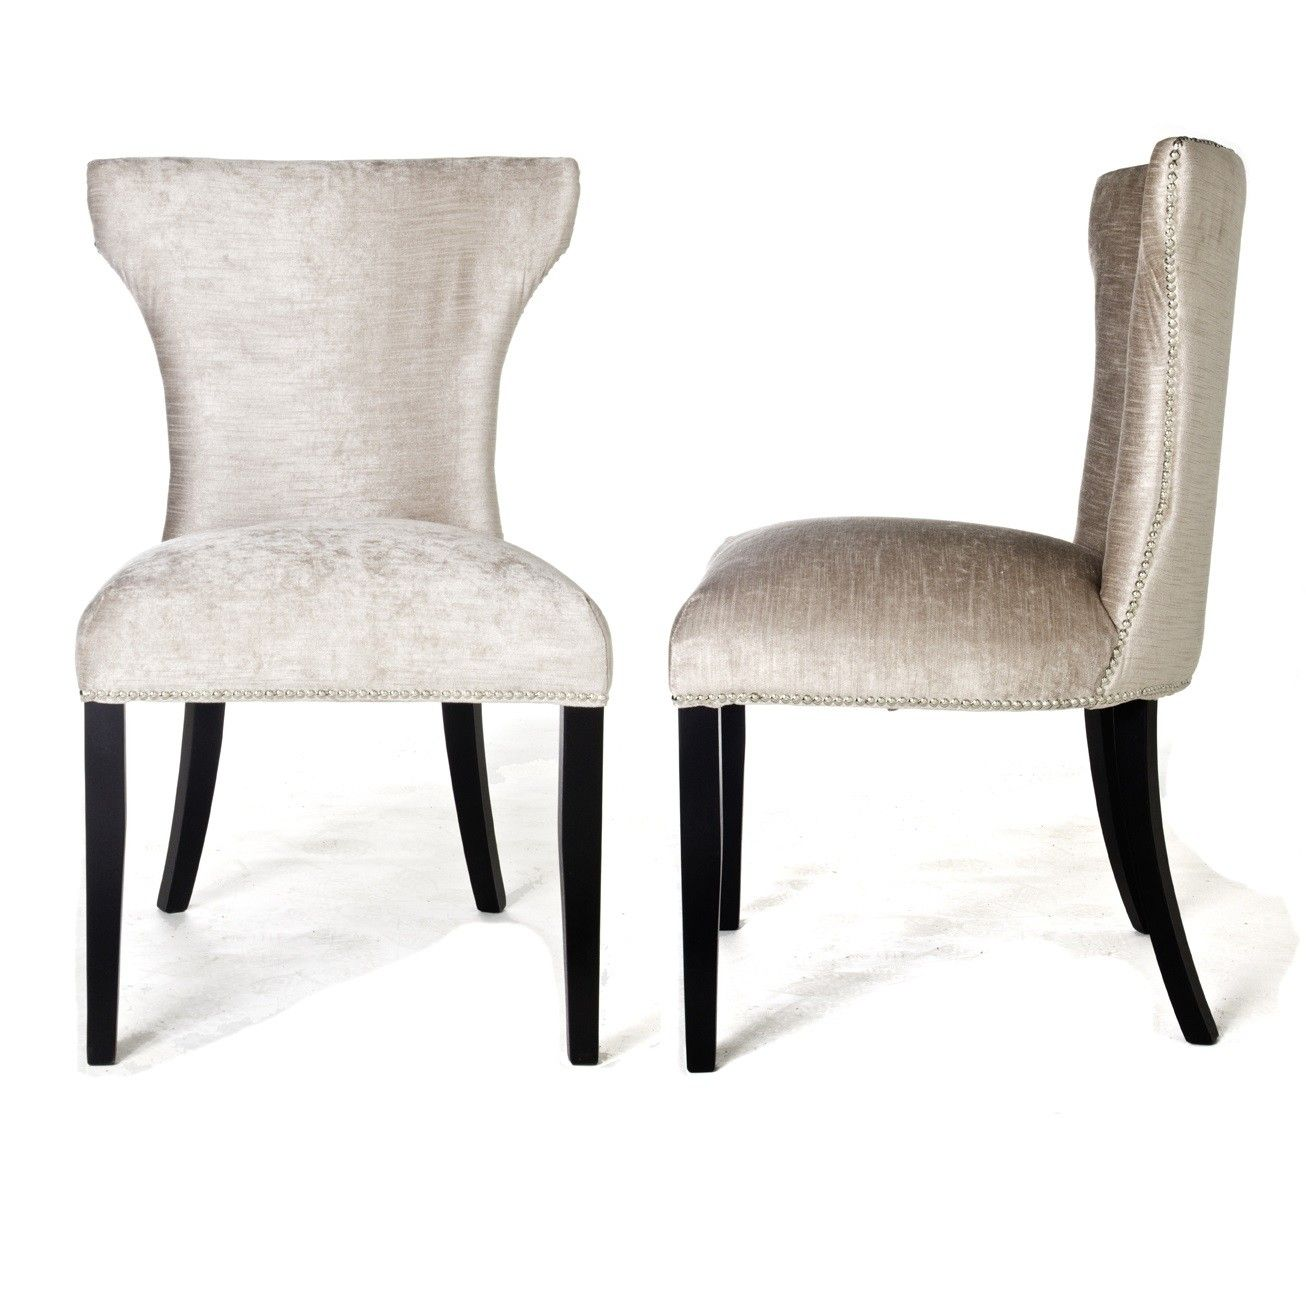 Ordinaire Luxury Windsor Gold Velvet Dining Chair From Our Online UK Mail Order  Furniture Store. Shop For Luxury Furniture Pieces That Will Delight You In  Every Way.